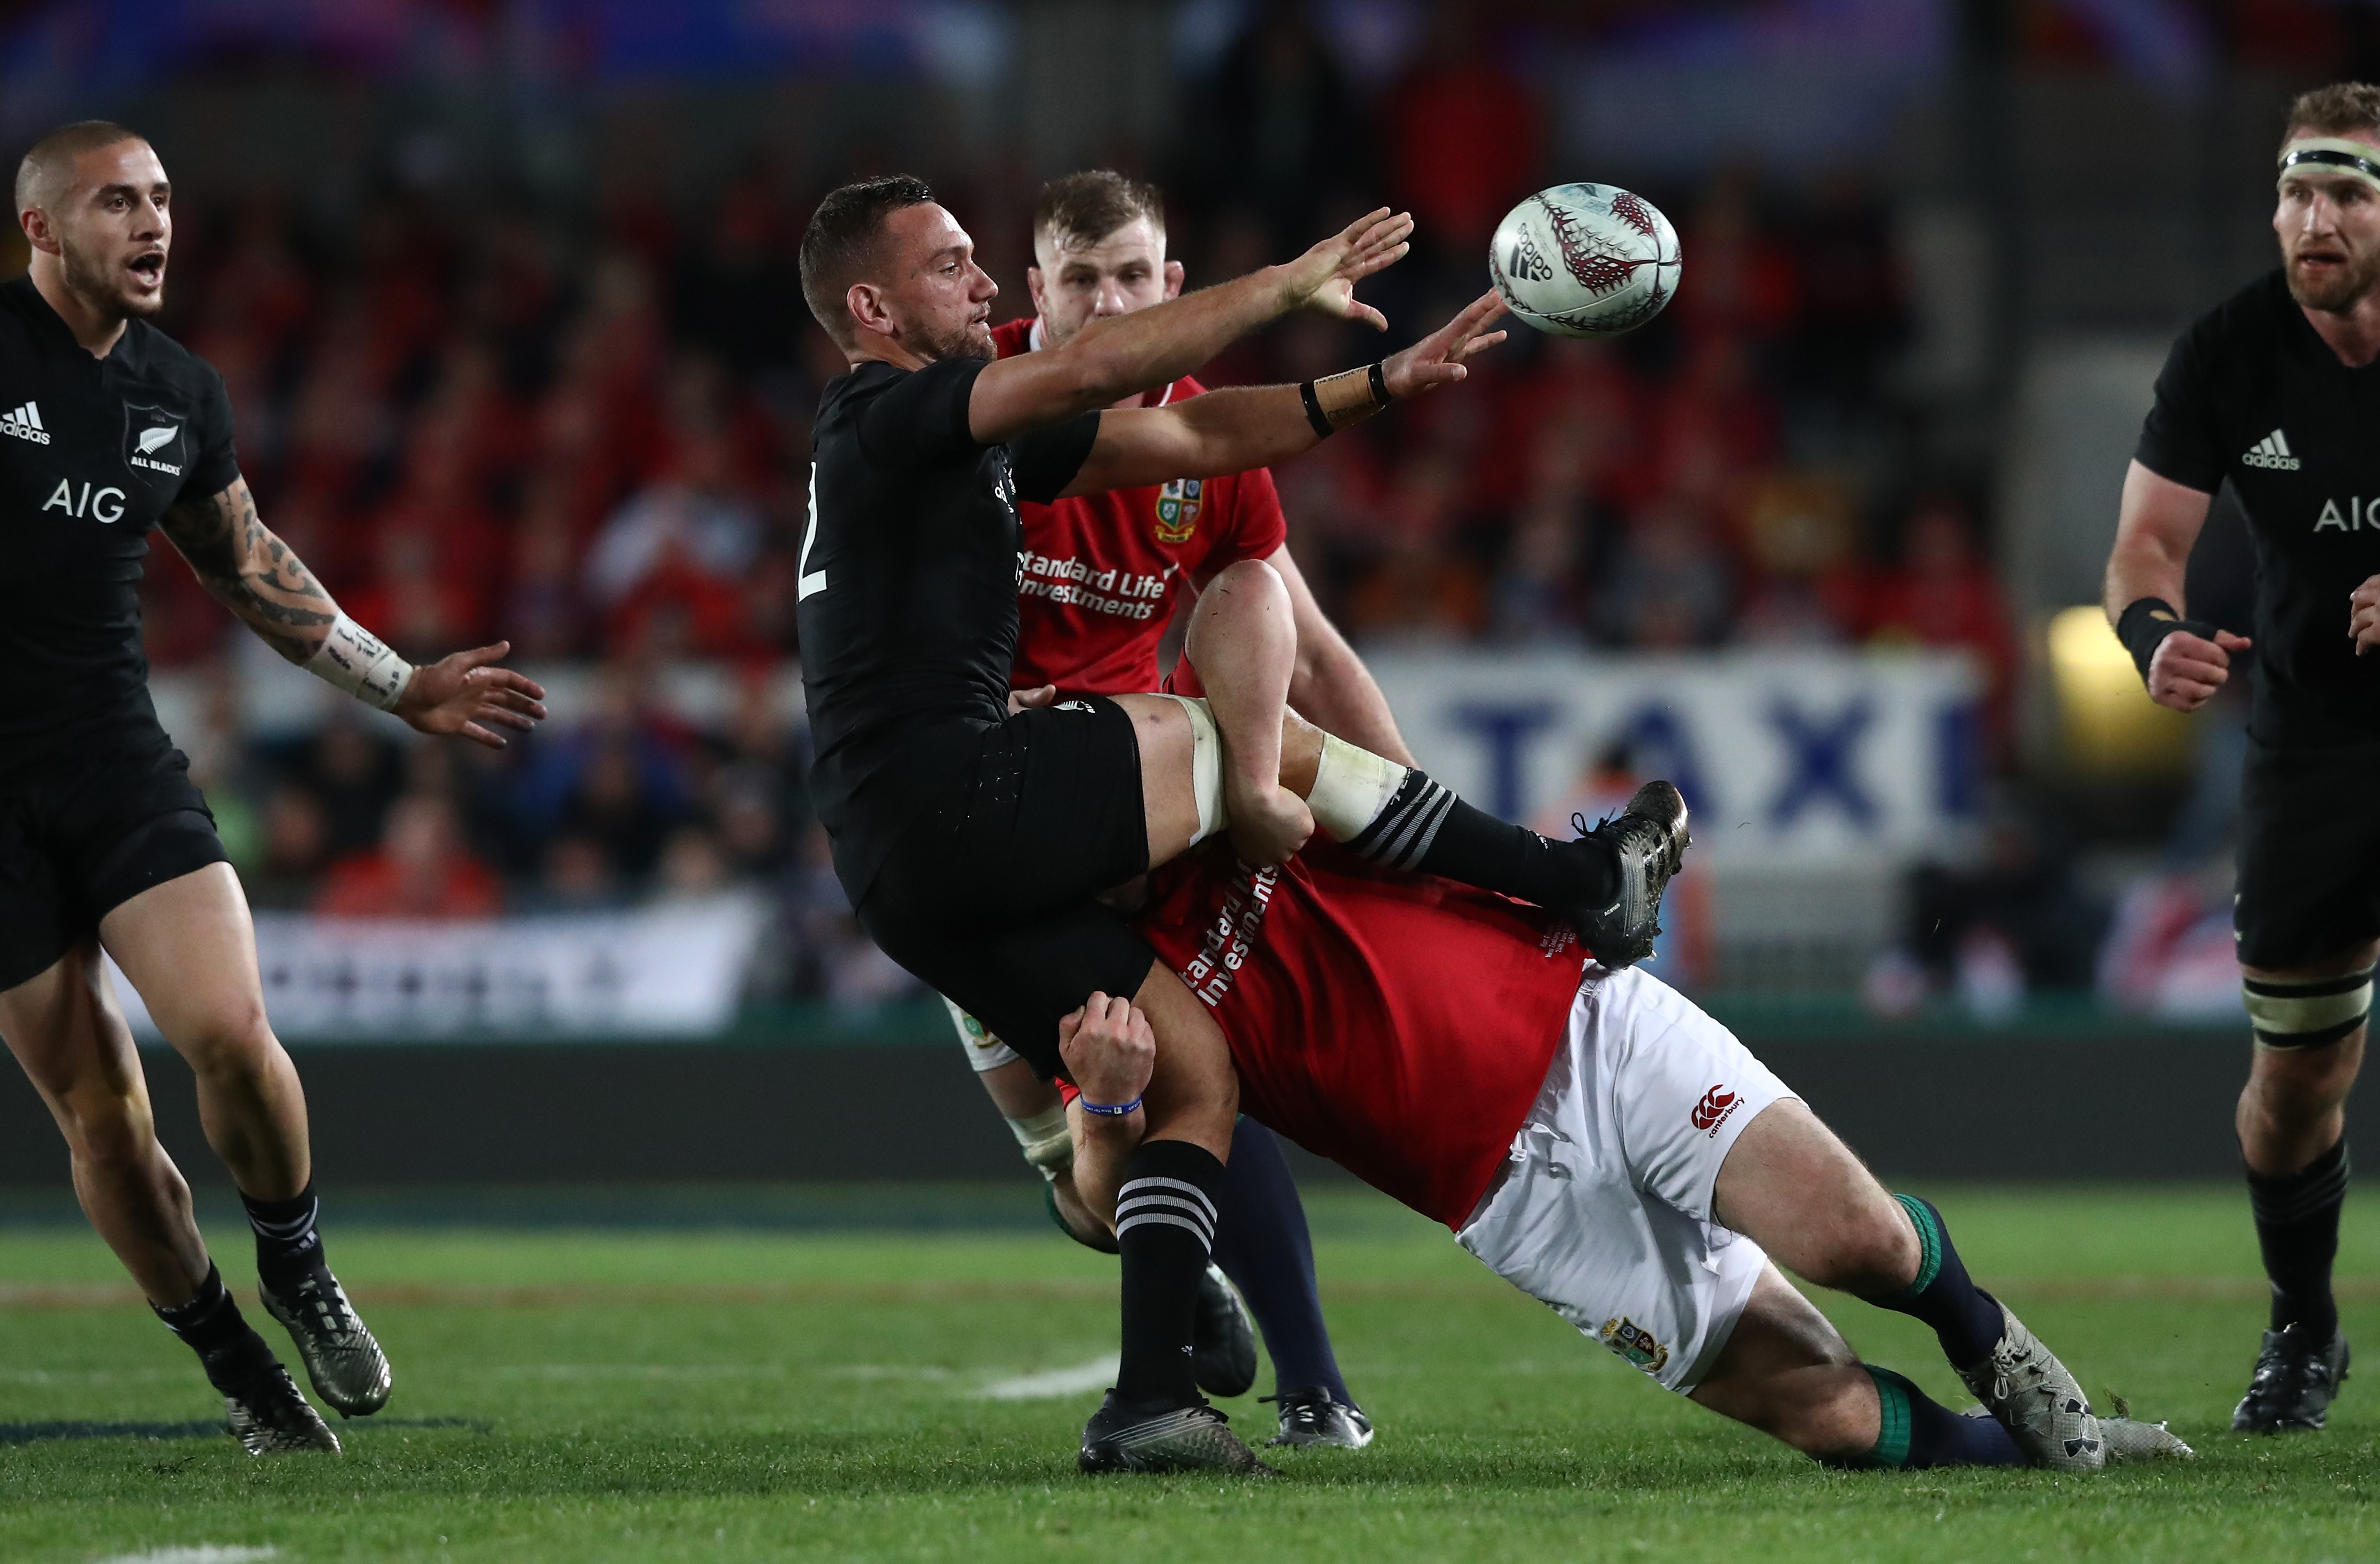 Aaron Cruden of the All Blacks offloads in the tackle. Photo: Getty